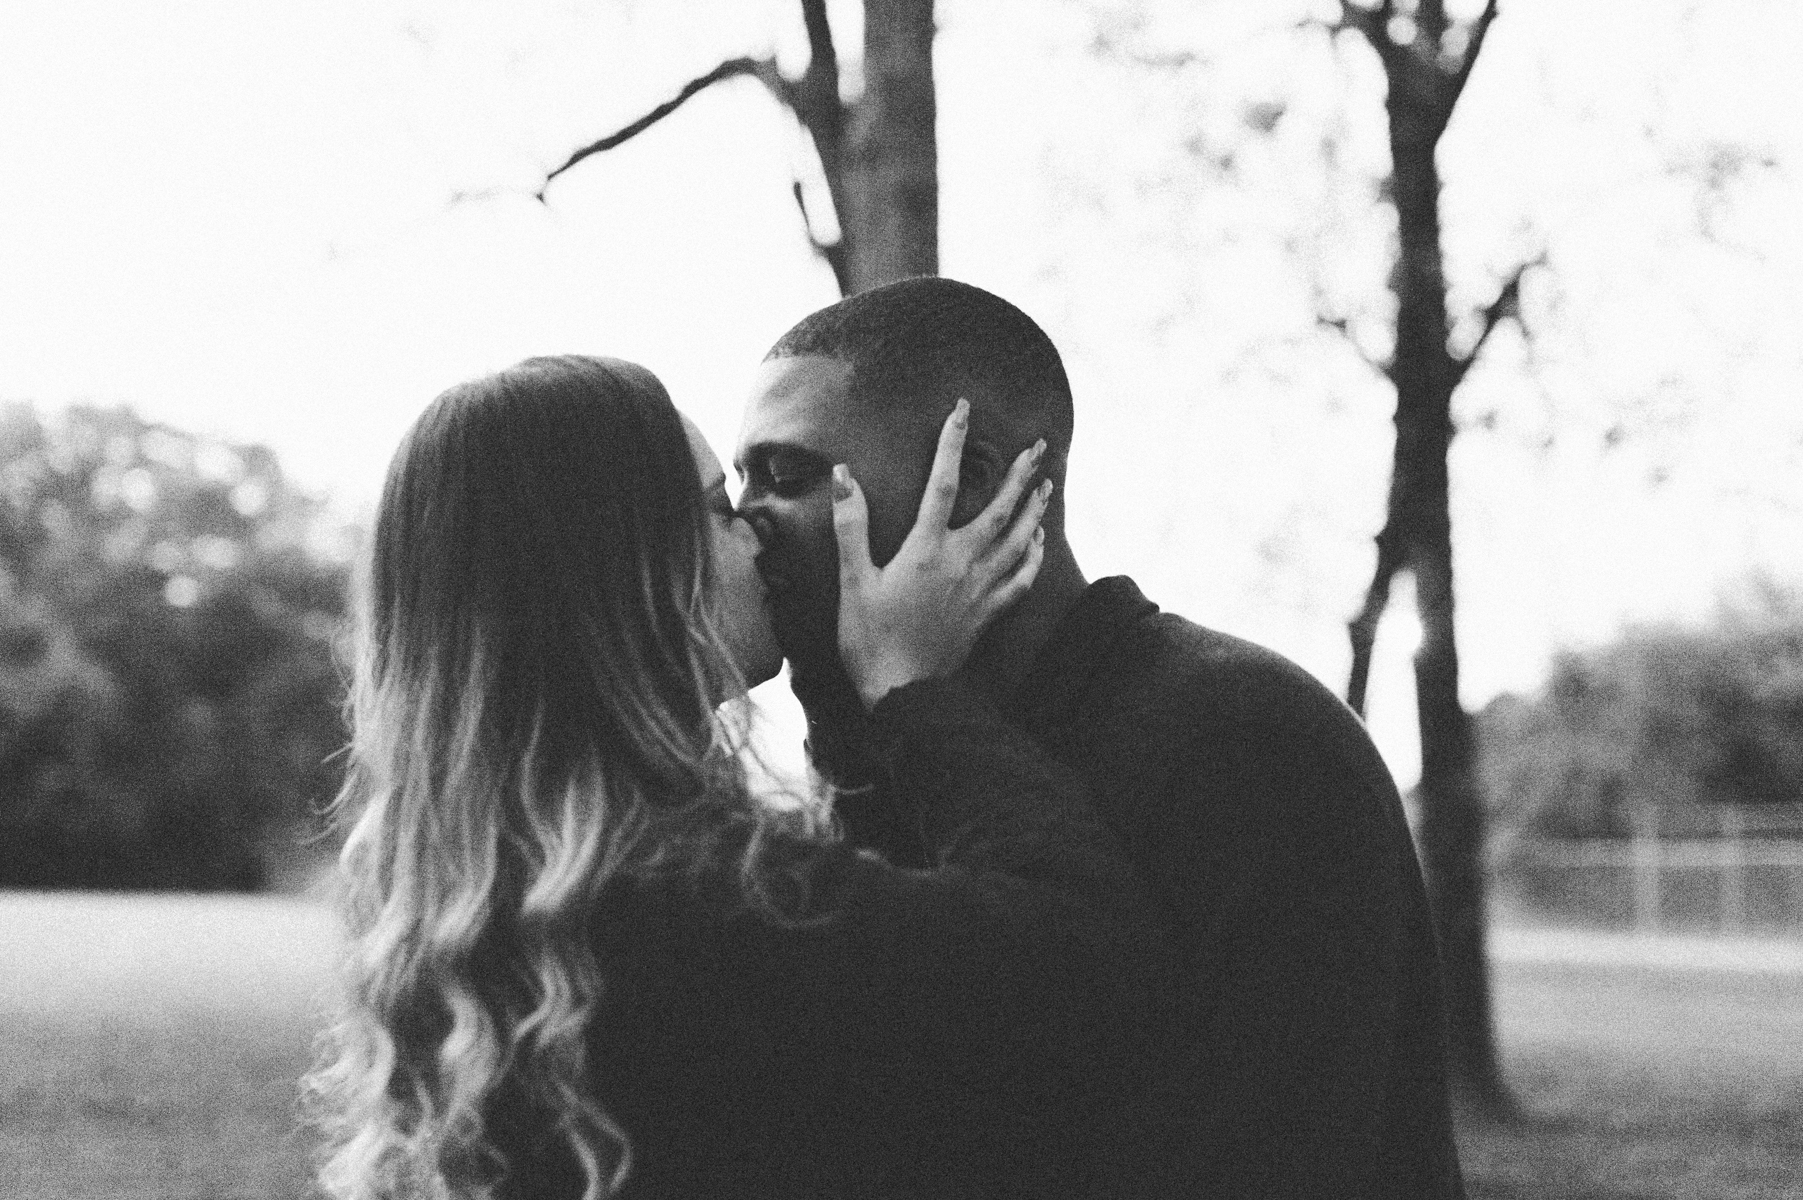 atlanta-engagement-photographer-atlanta-wedding-photographer-trent-david-kat-proposal-preview-52.jpg